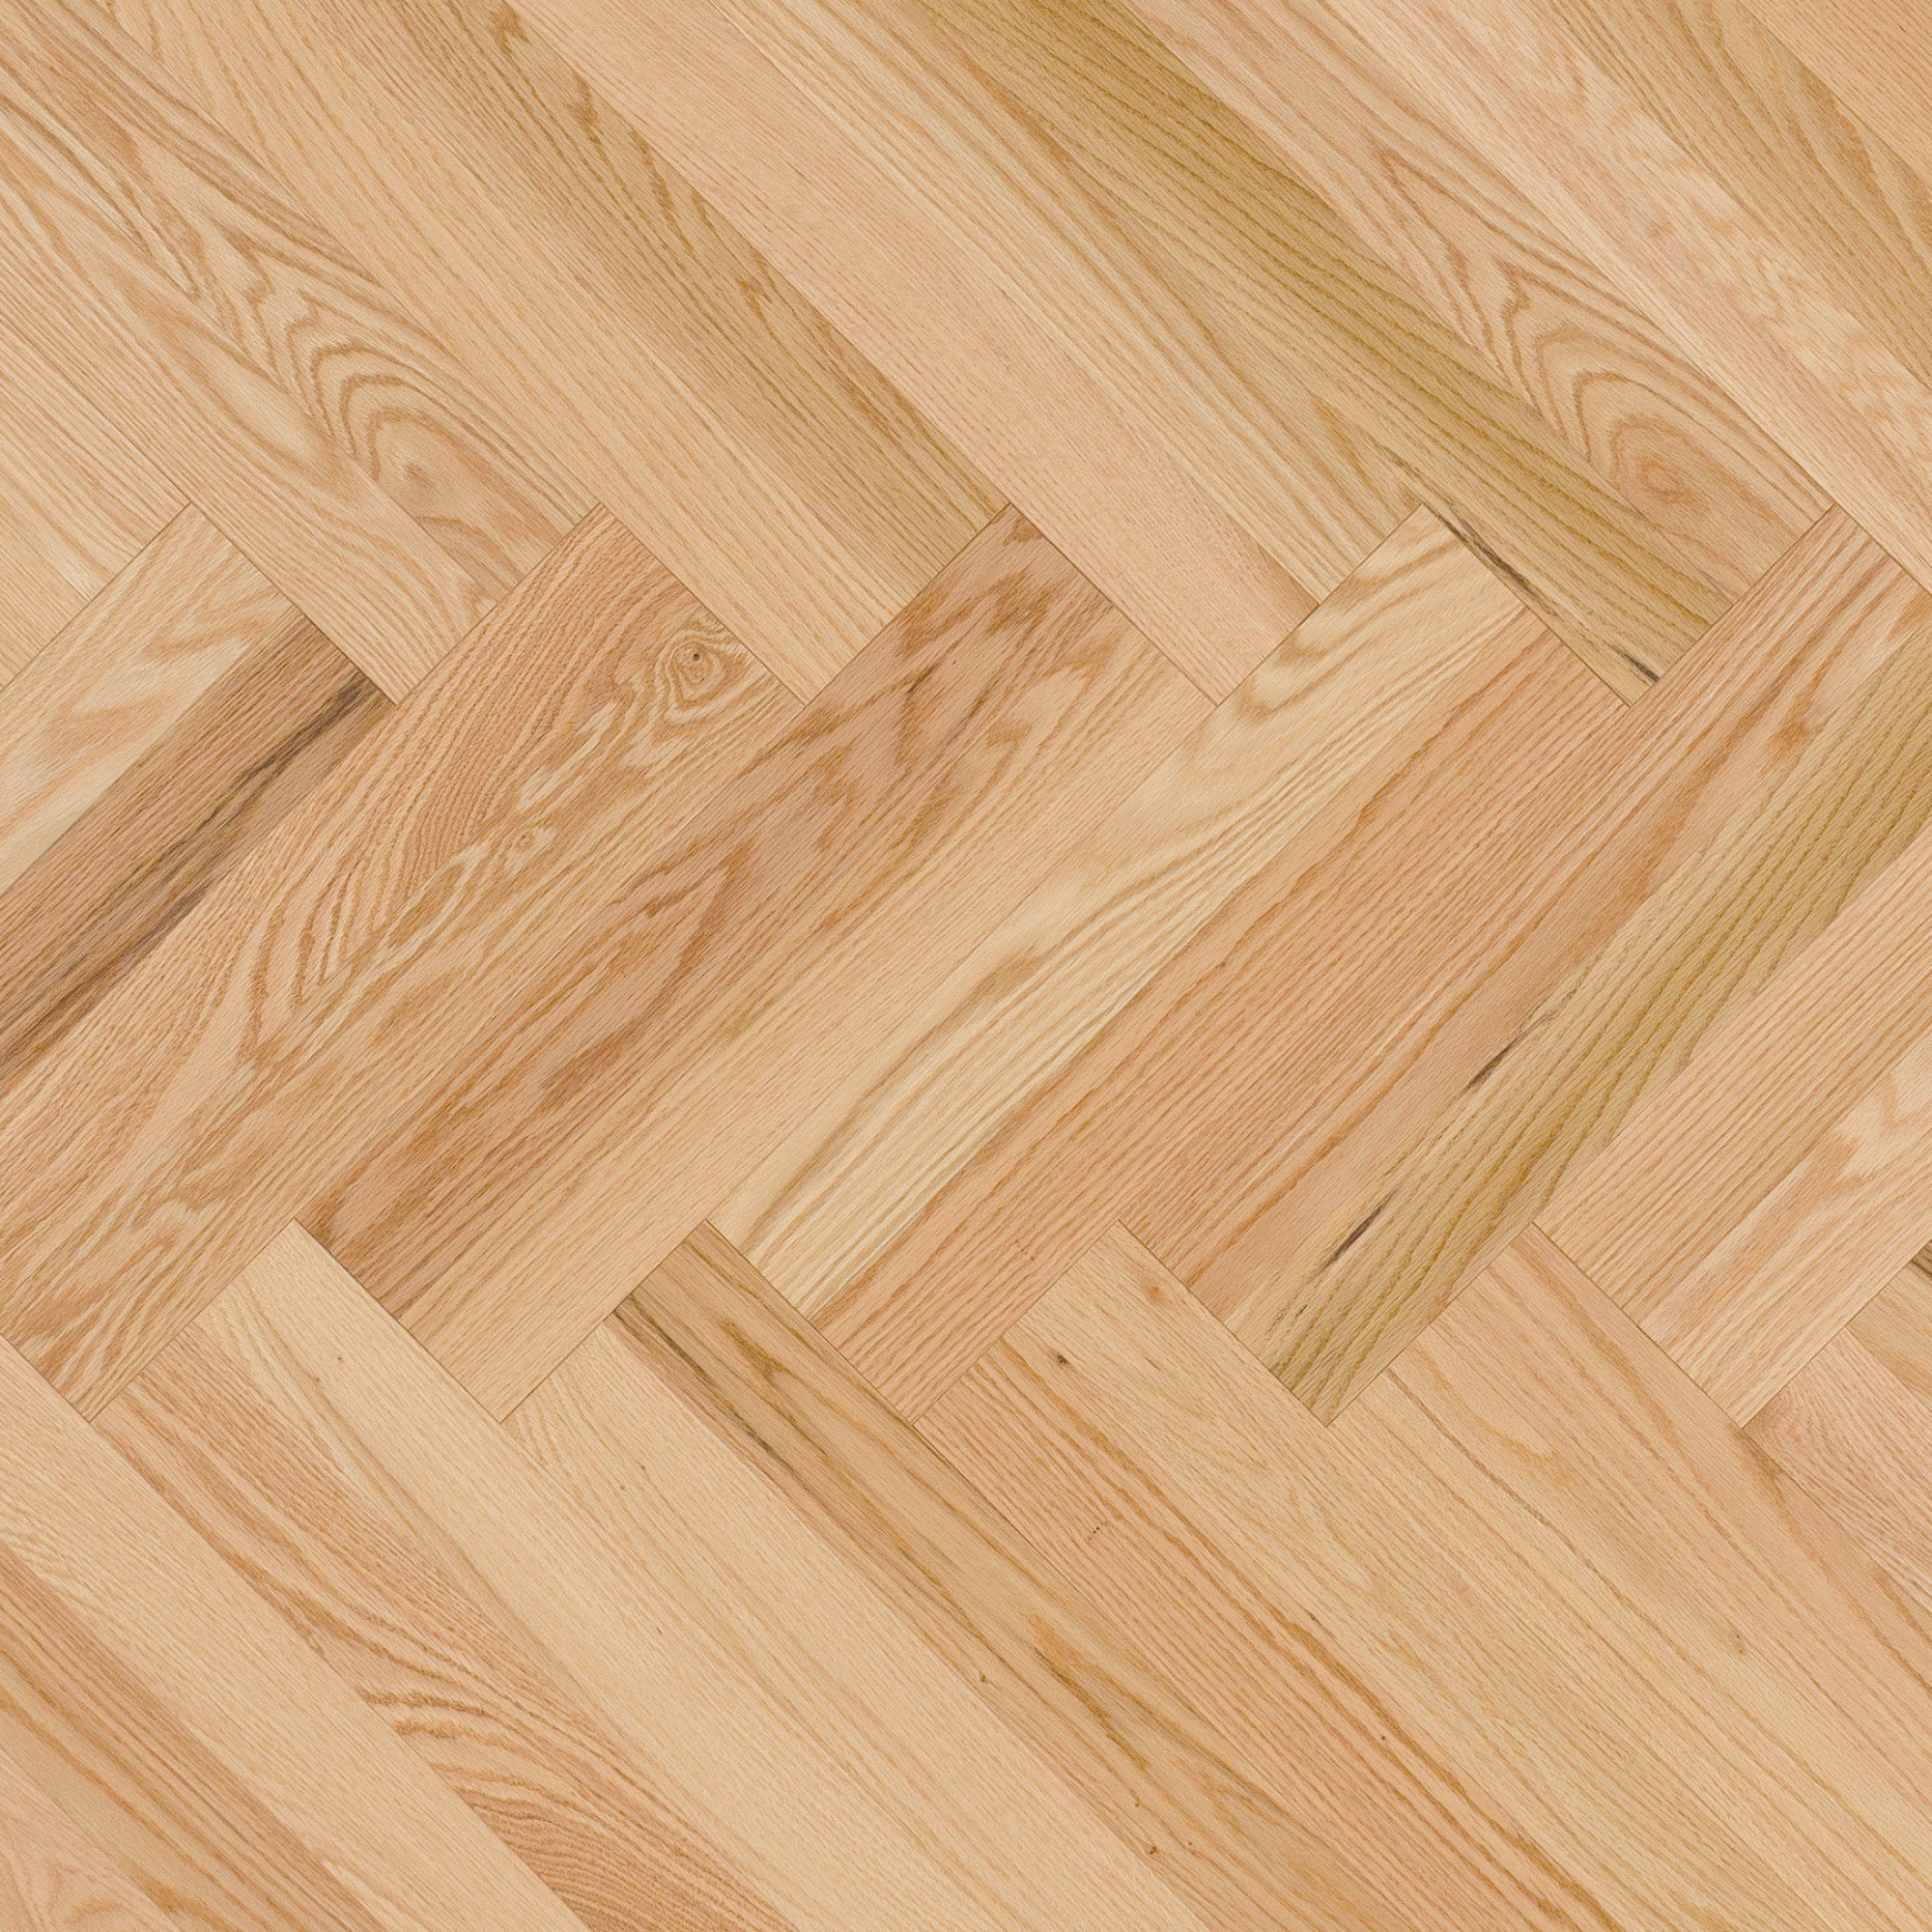 Herringbone Red Oak Exclusive Mirage Hardwood Floors